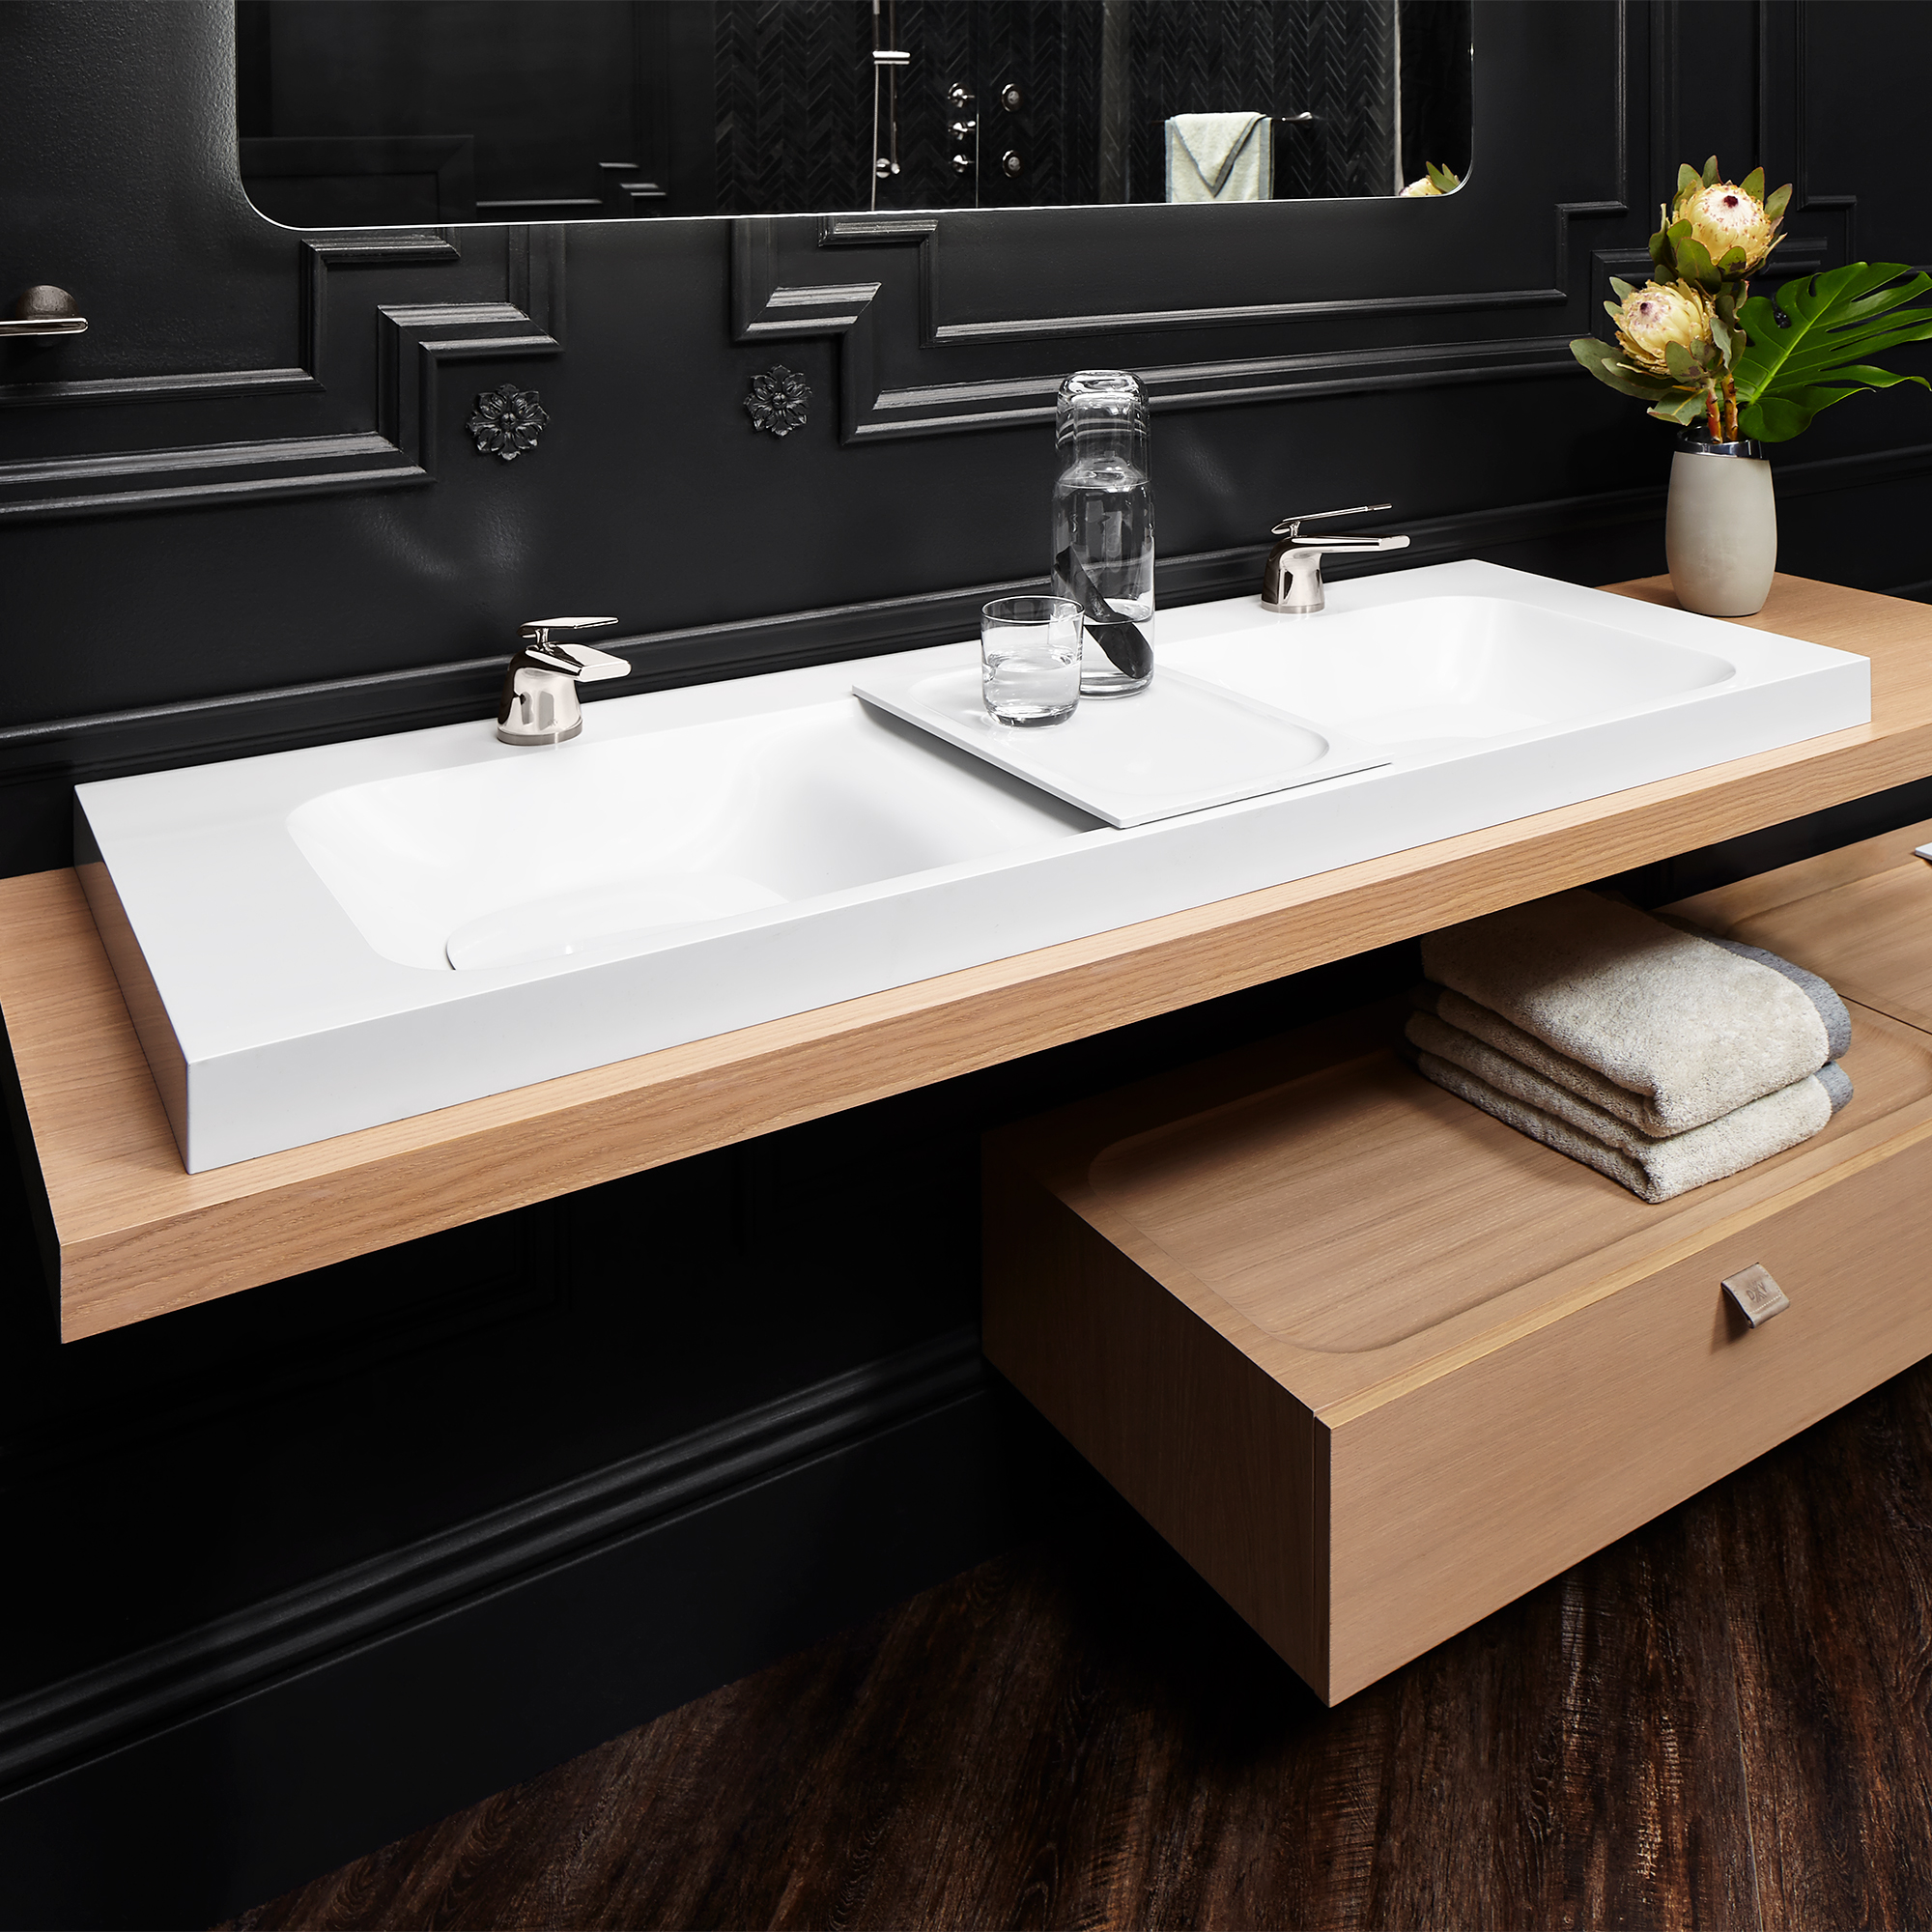 two sinks in bathroom dxv modulus 55 inch single bathroom sink dxv 21071